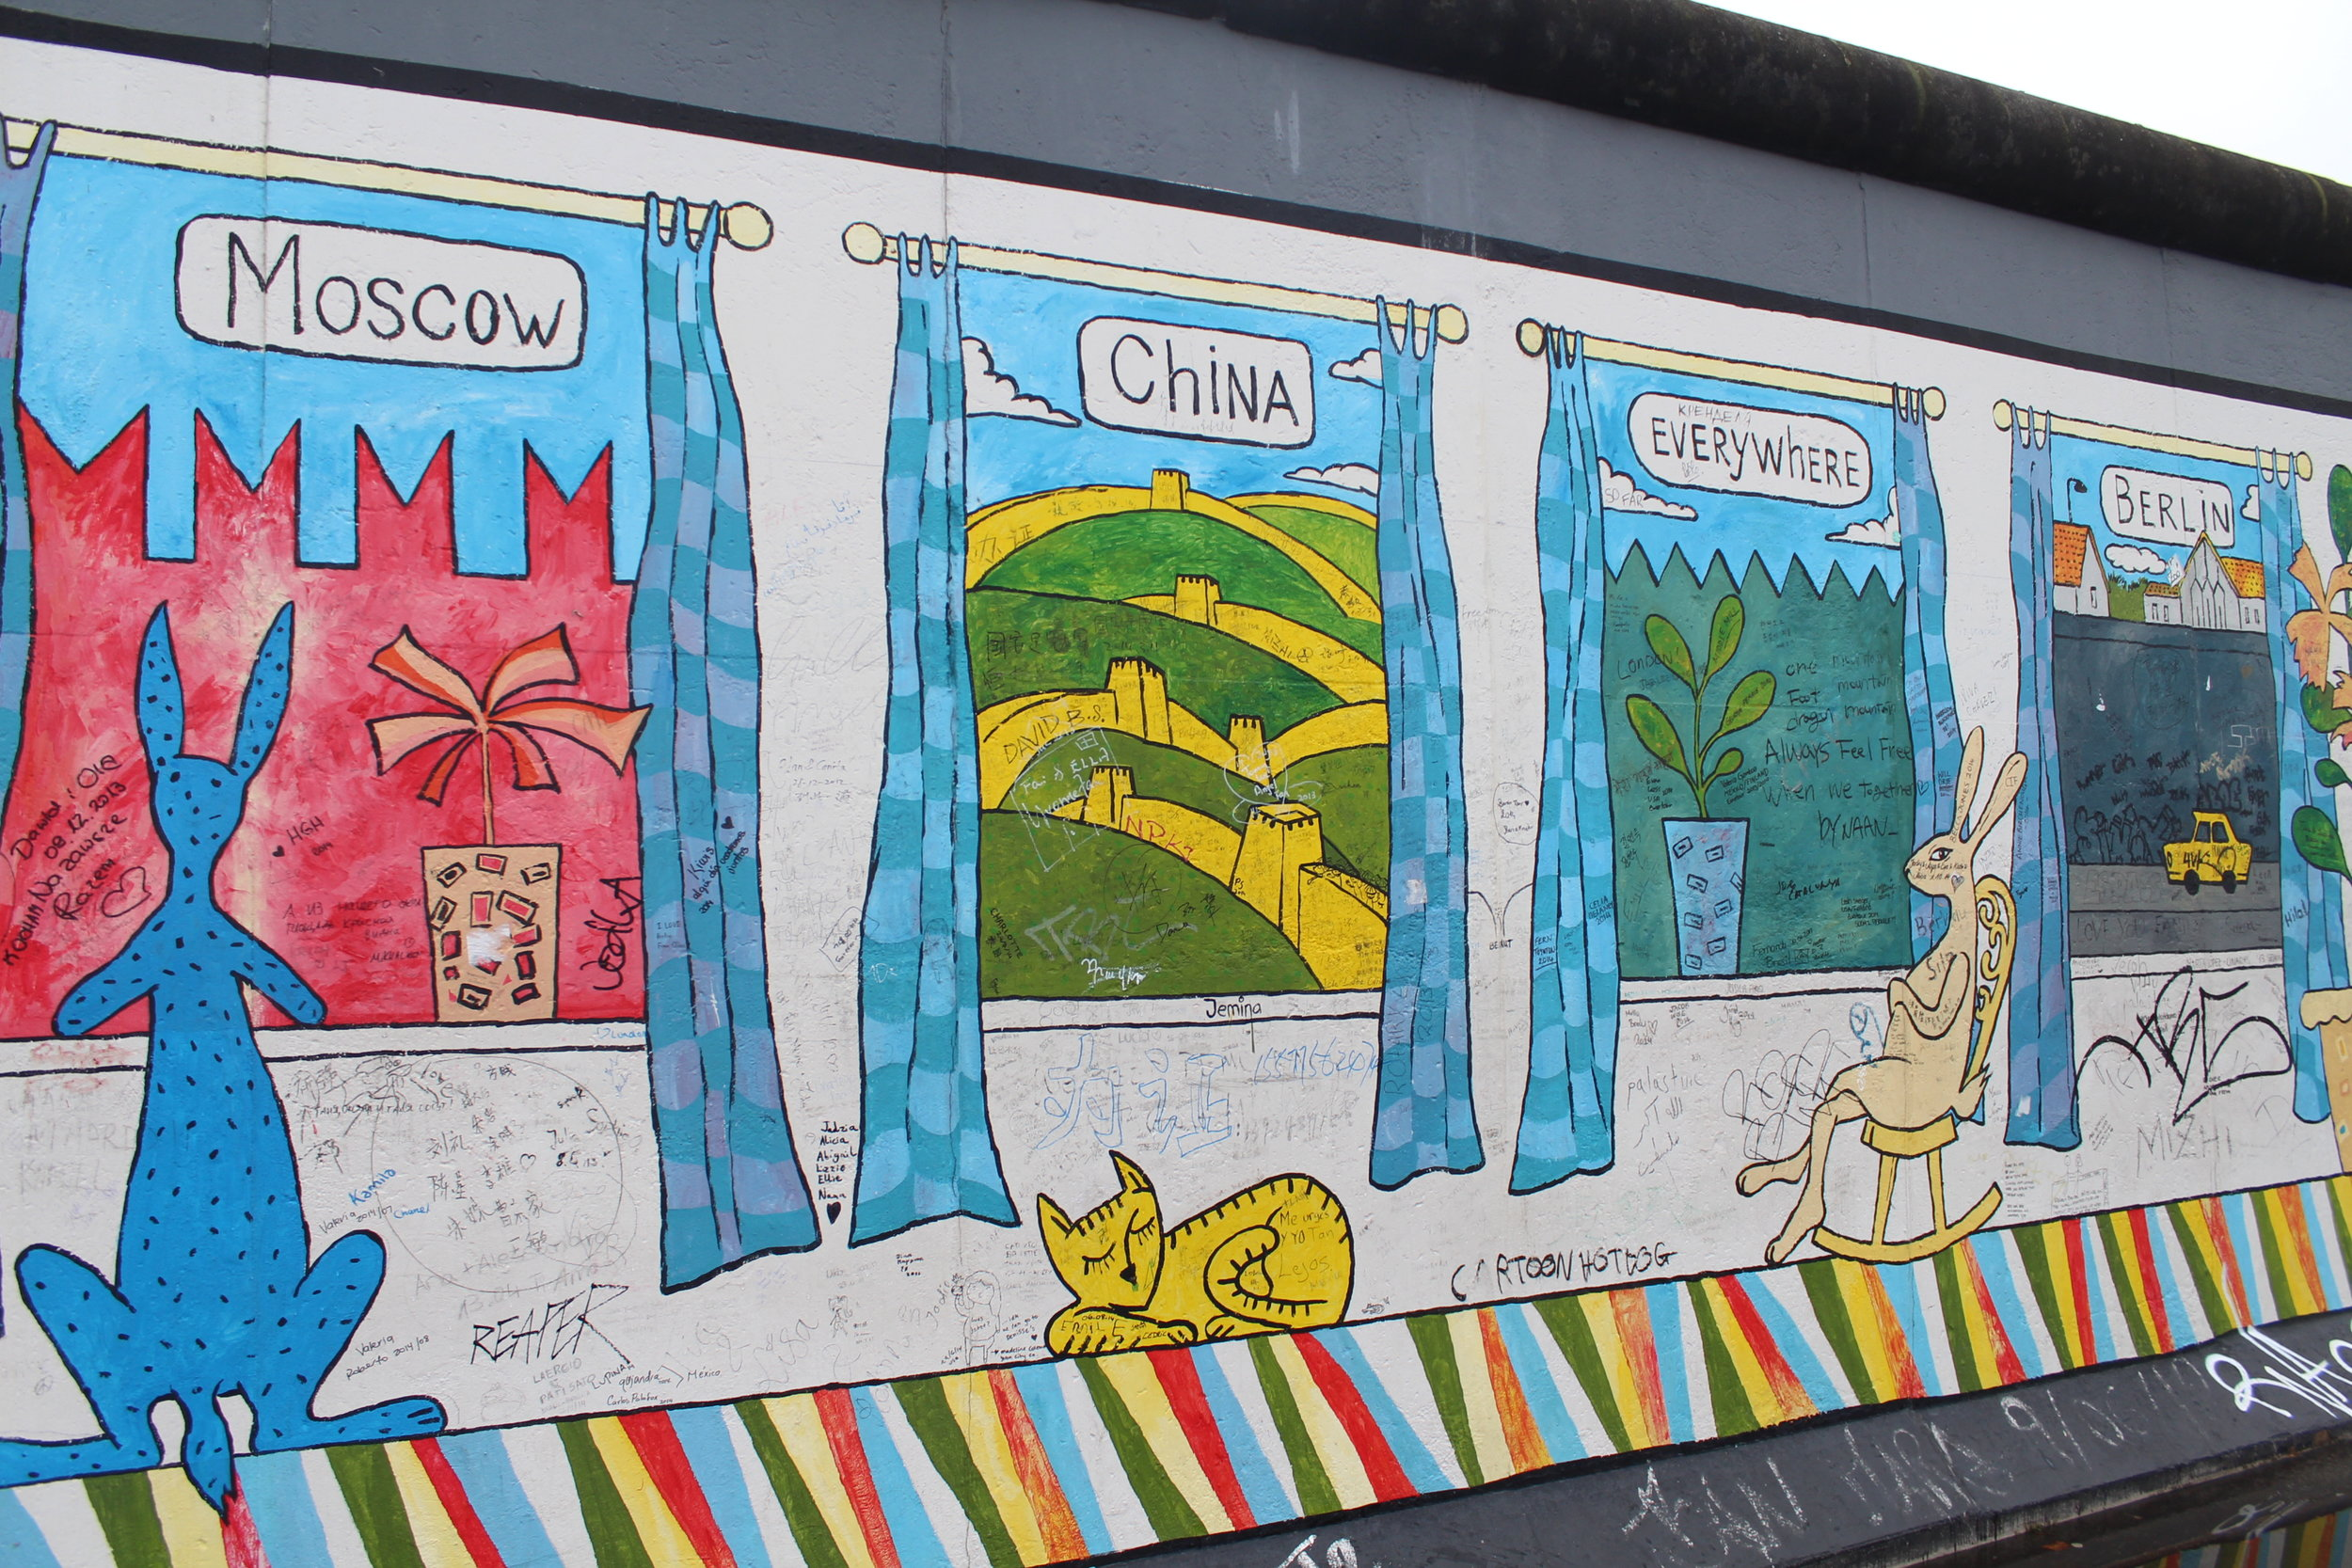 When we took a few moments to look at this picture by Alexey Taranin, we stood next to two girls who were debating its meaning. Why did he choose that wall for 'Everywhere'? What's with the animals? Why is Moscow's kangaroo blue? Does Moscow even have kangaroos? Is that even a kangaroo?  On first glance, I thought this was easy to interpret, but those girls filled my head with questions and alternative theories too. The kangaroo questions will particularly bug me for a while.